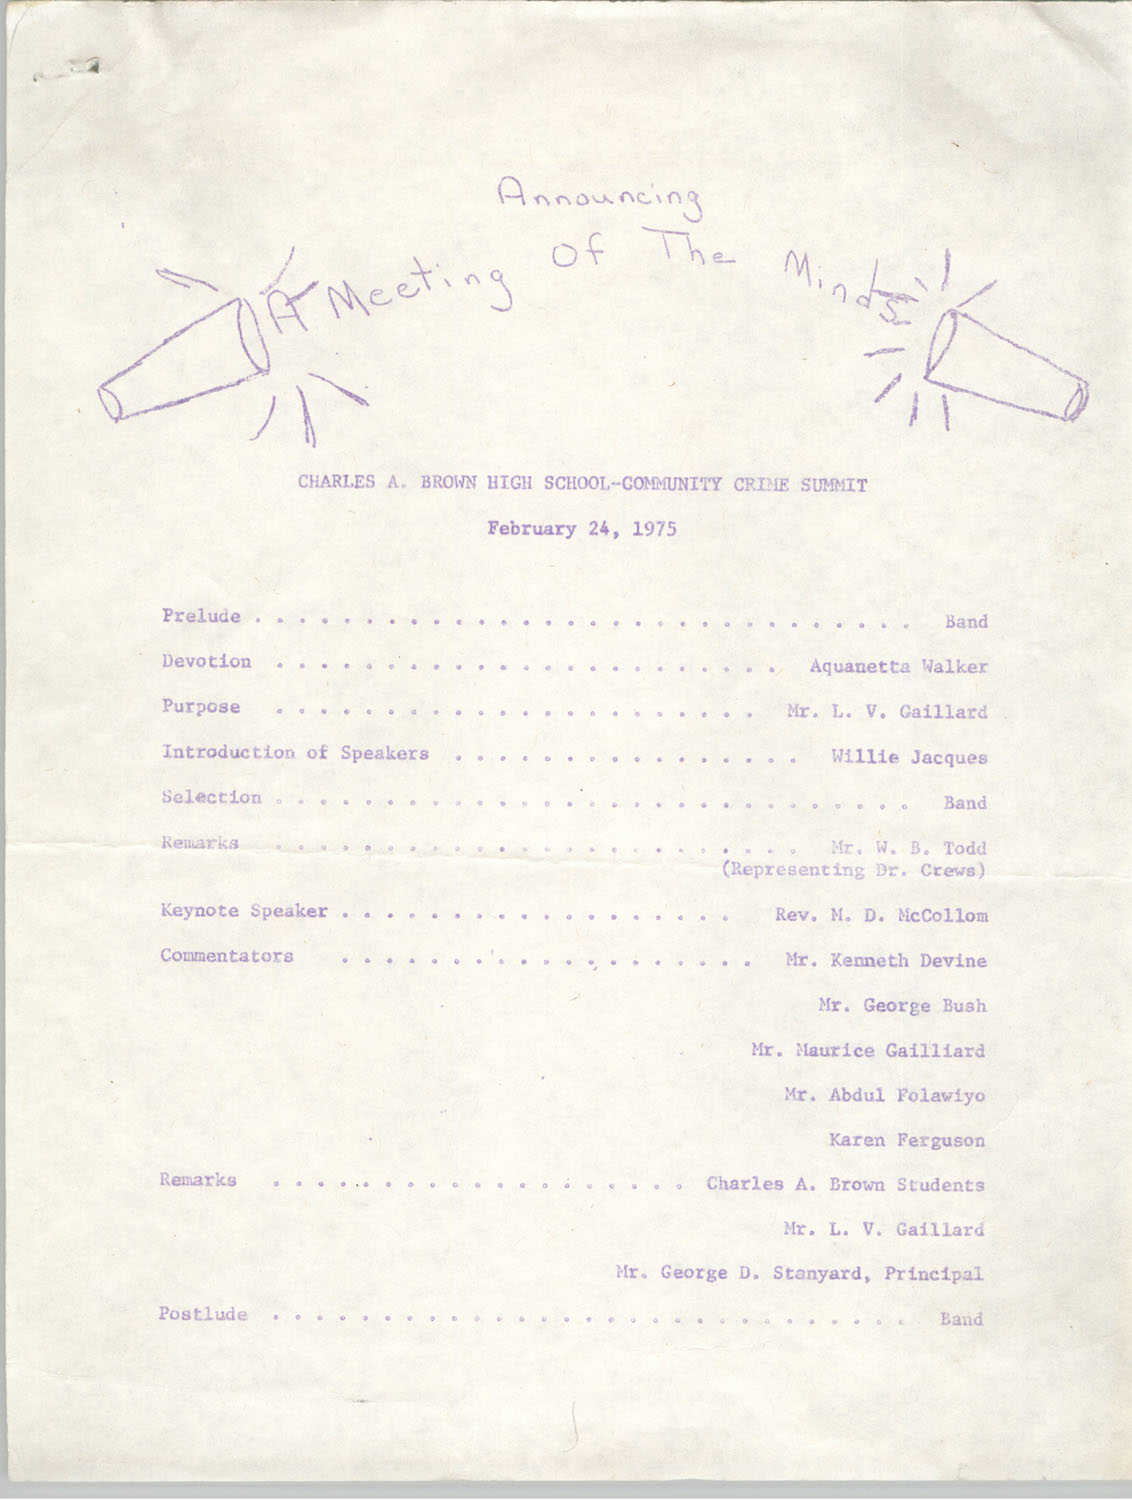 Charles A. Brown High School Community Crime Summit Program, February 24, 1975